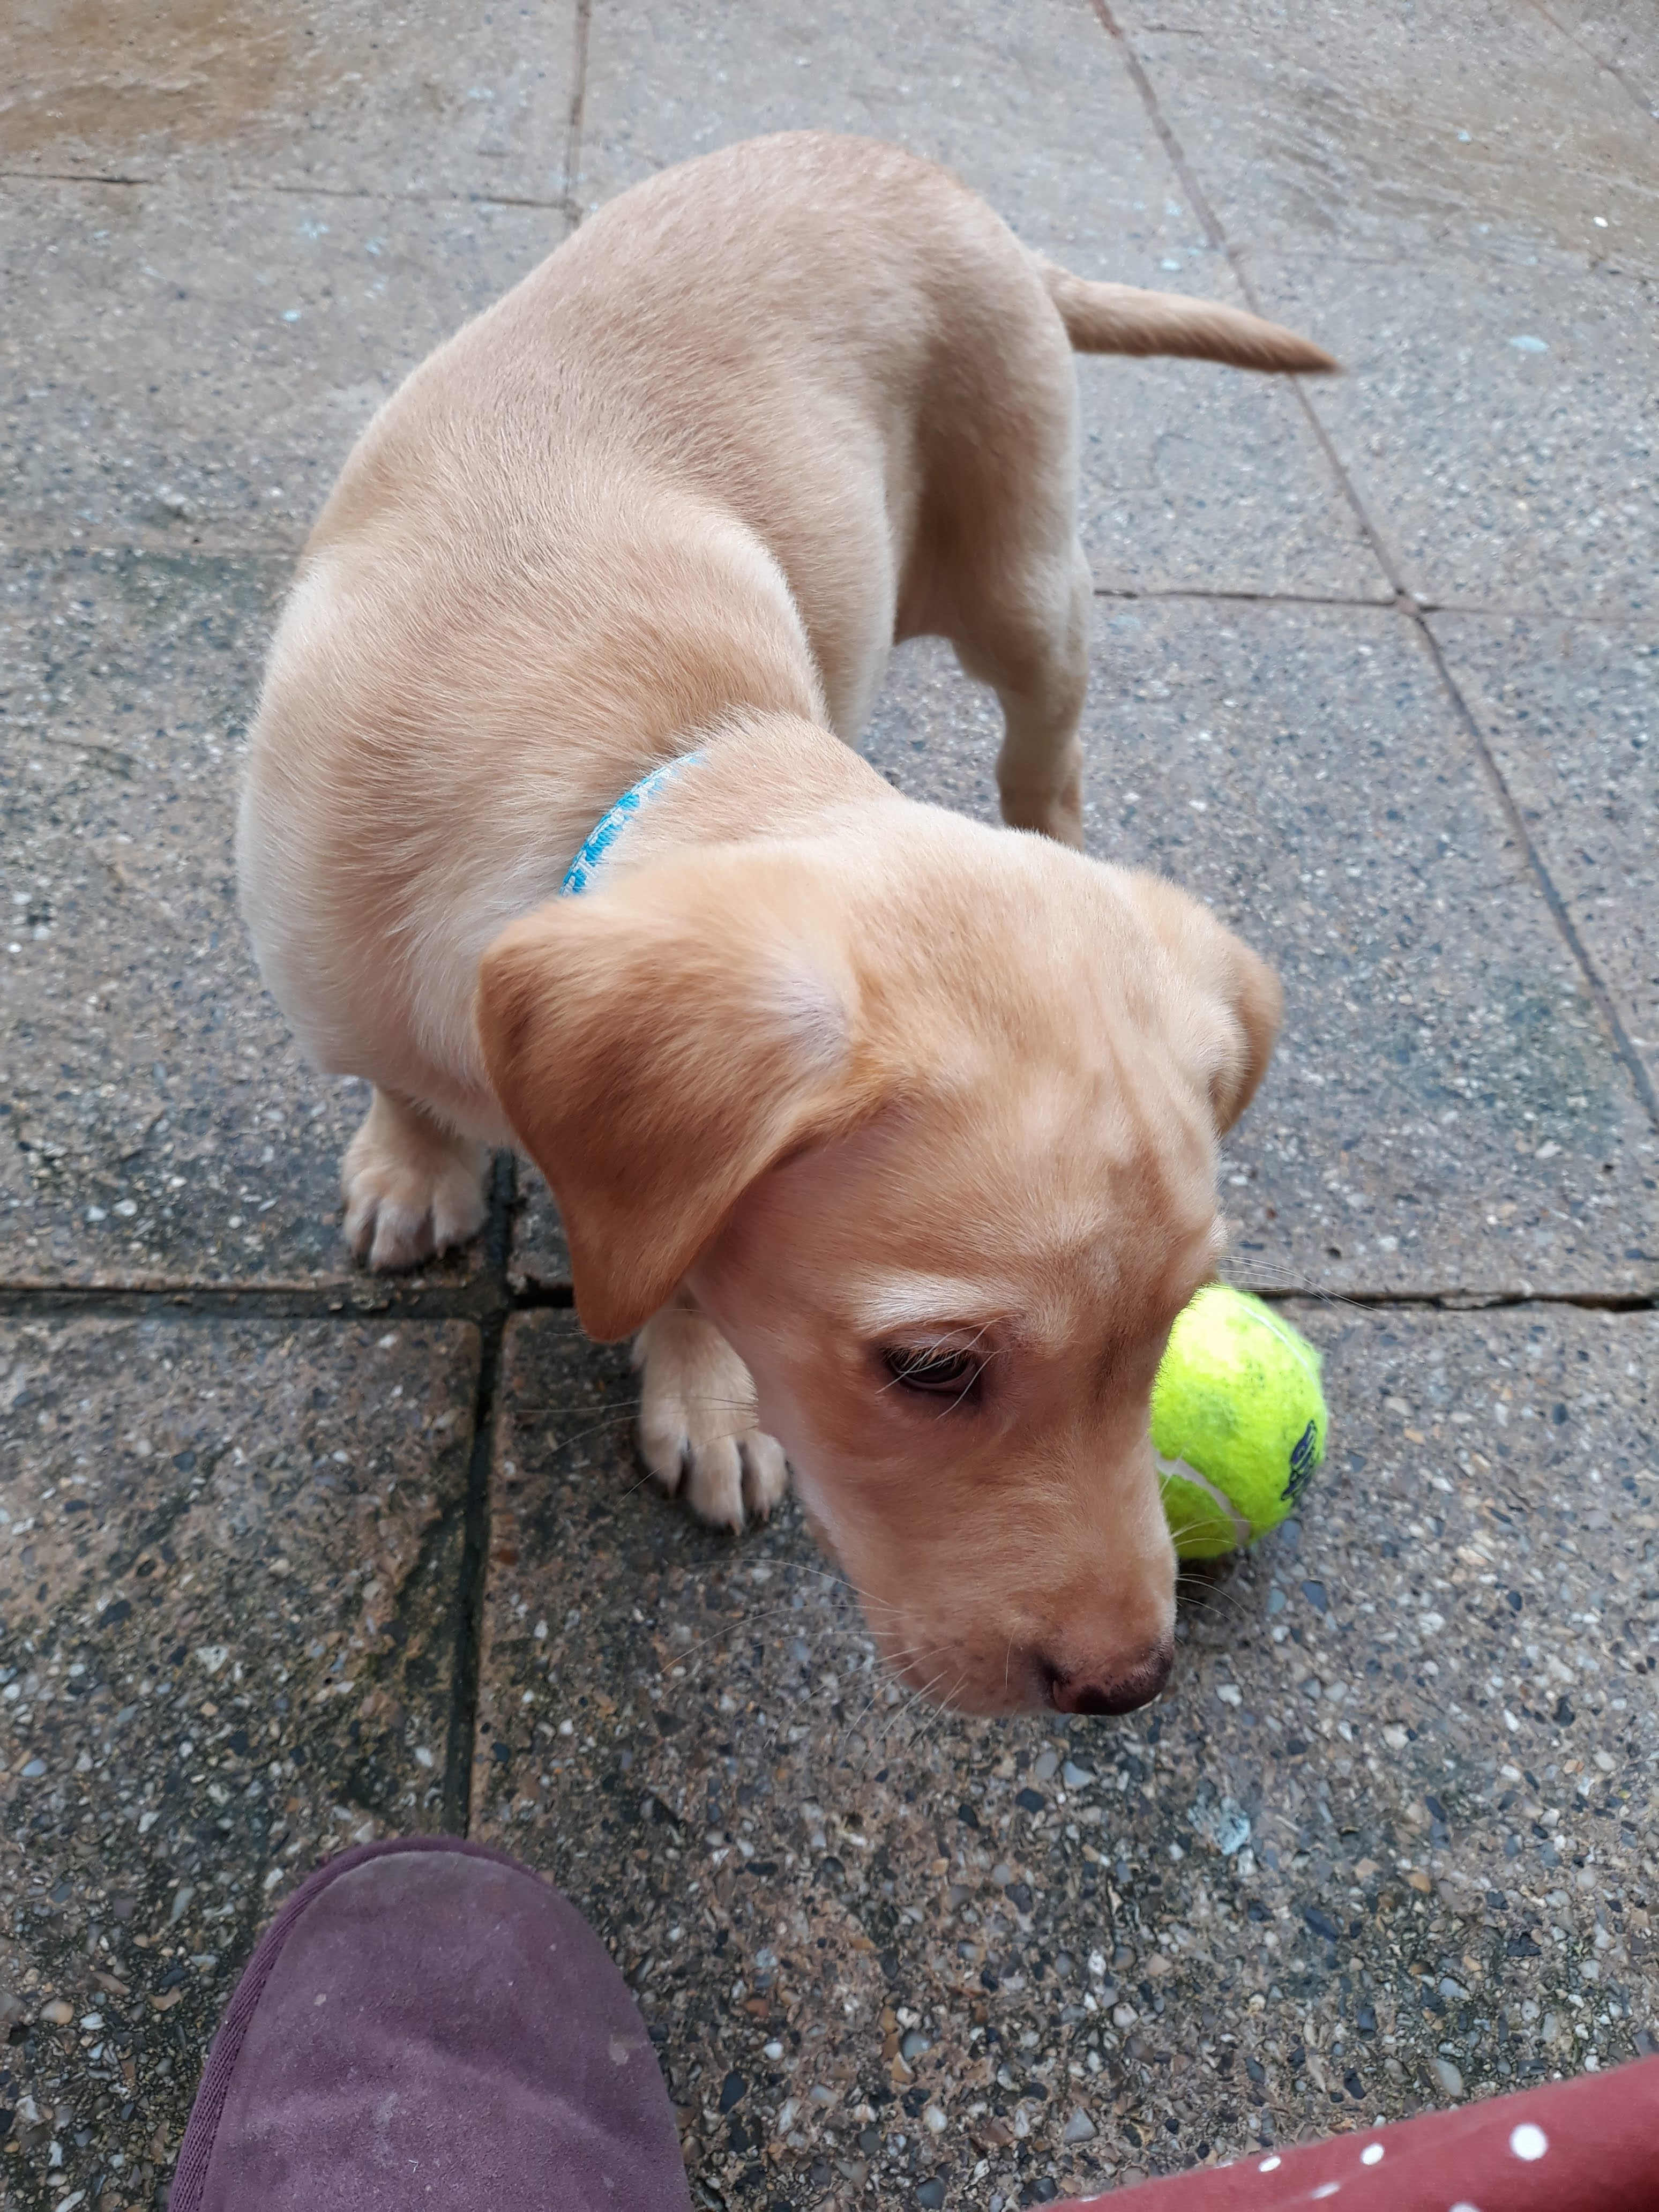 playing with the ball